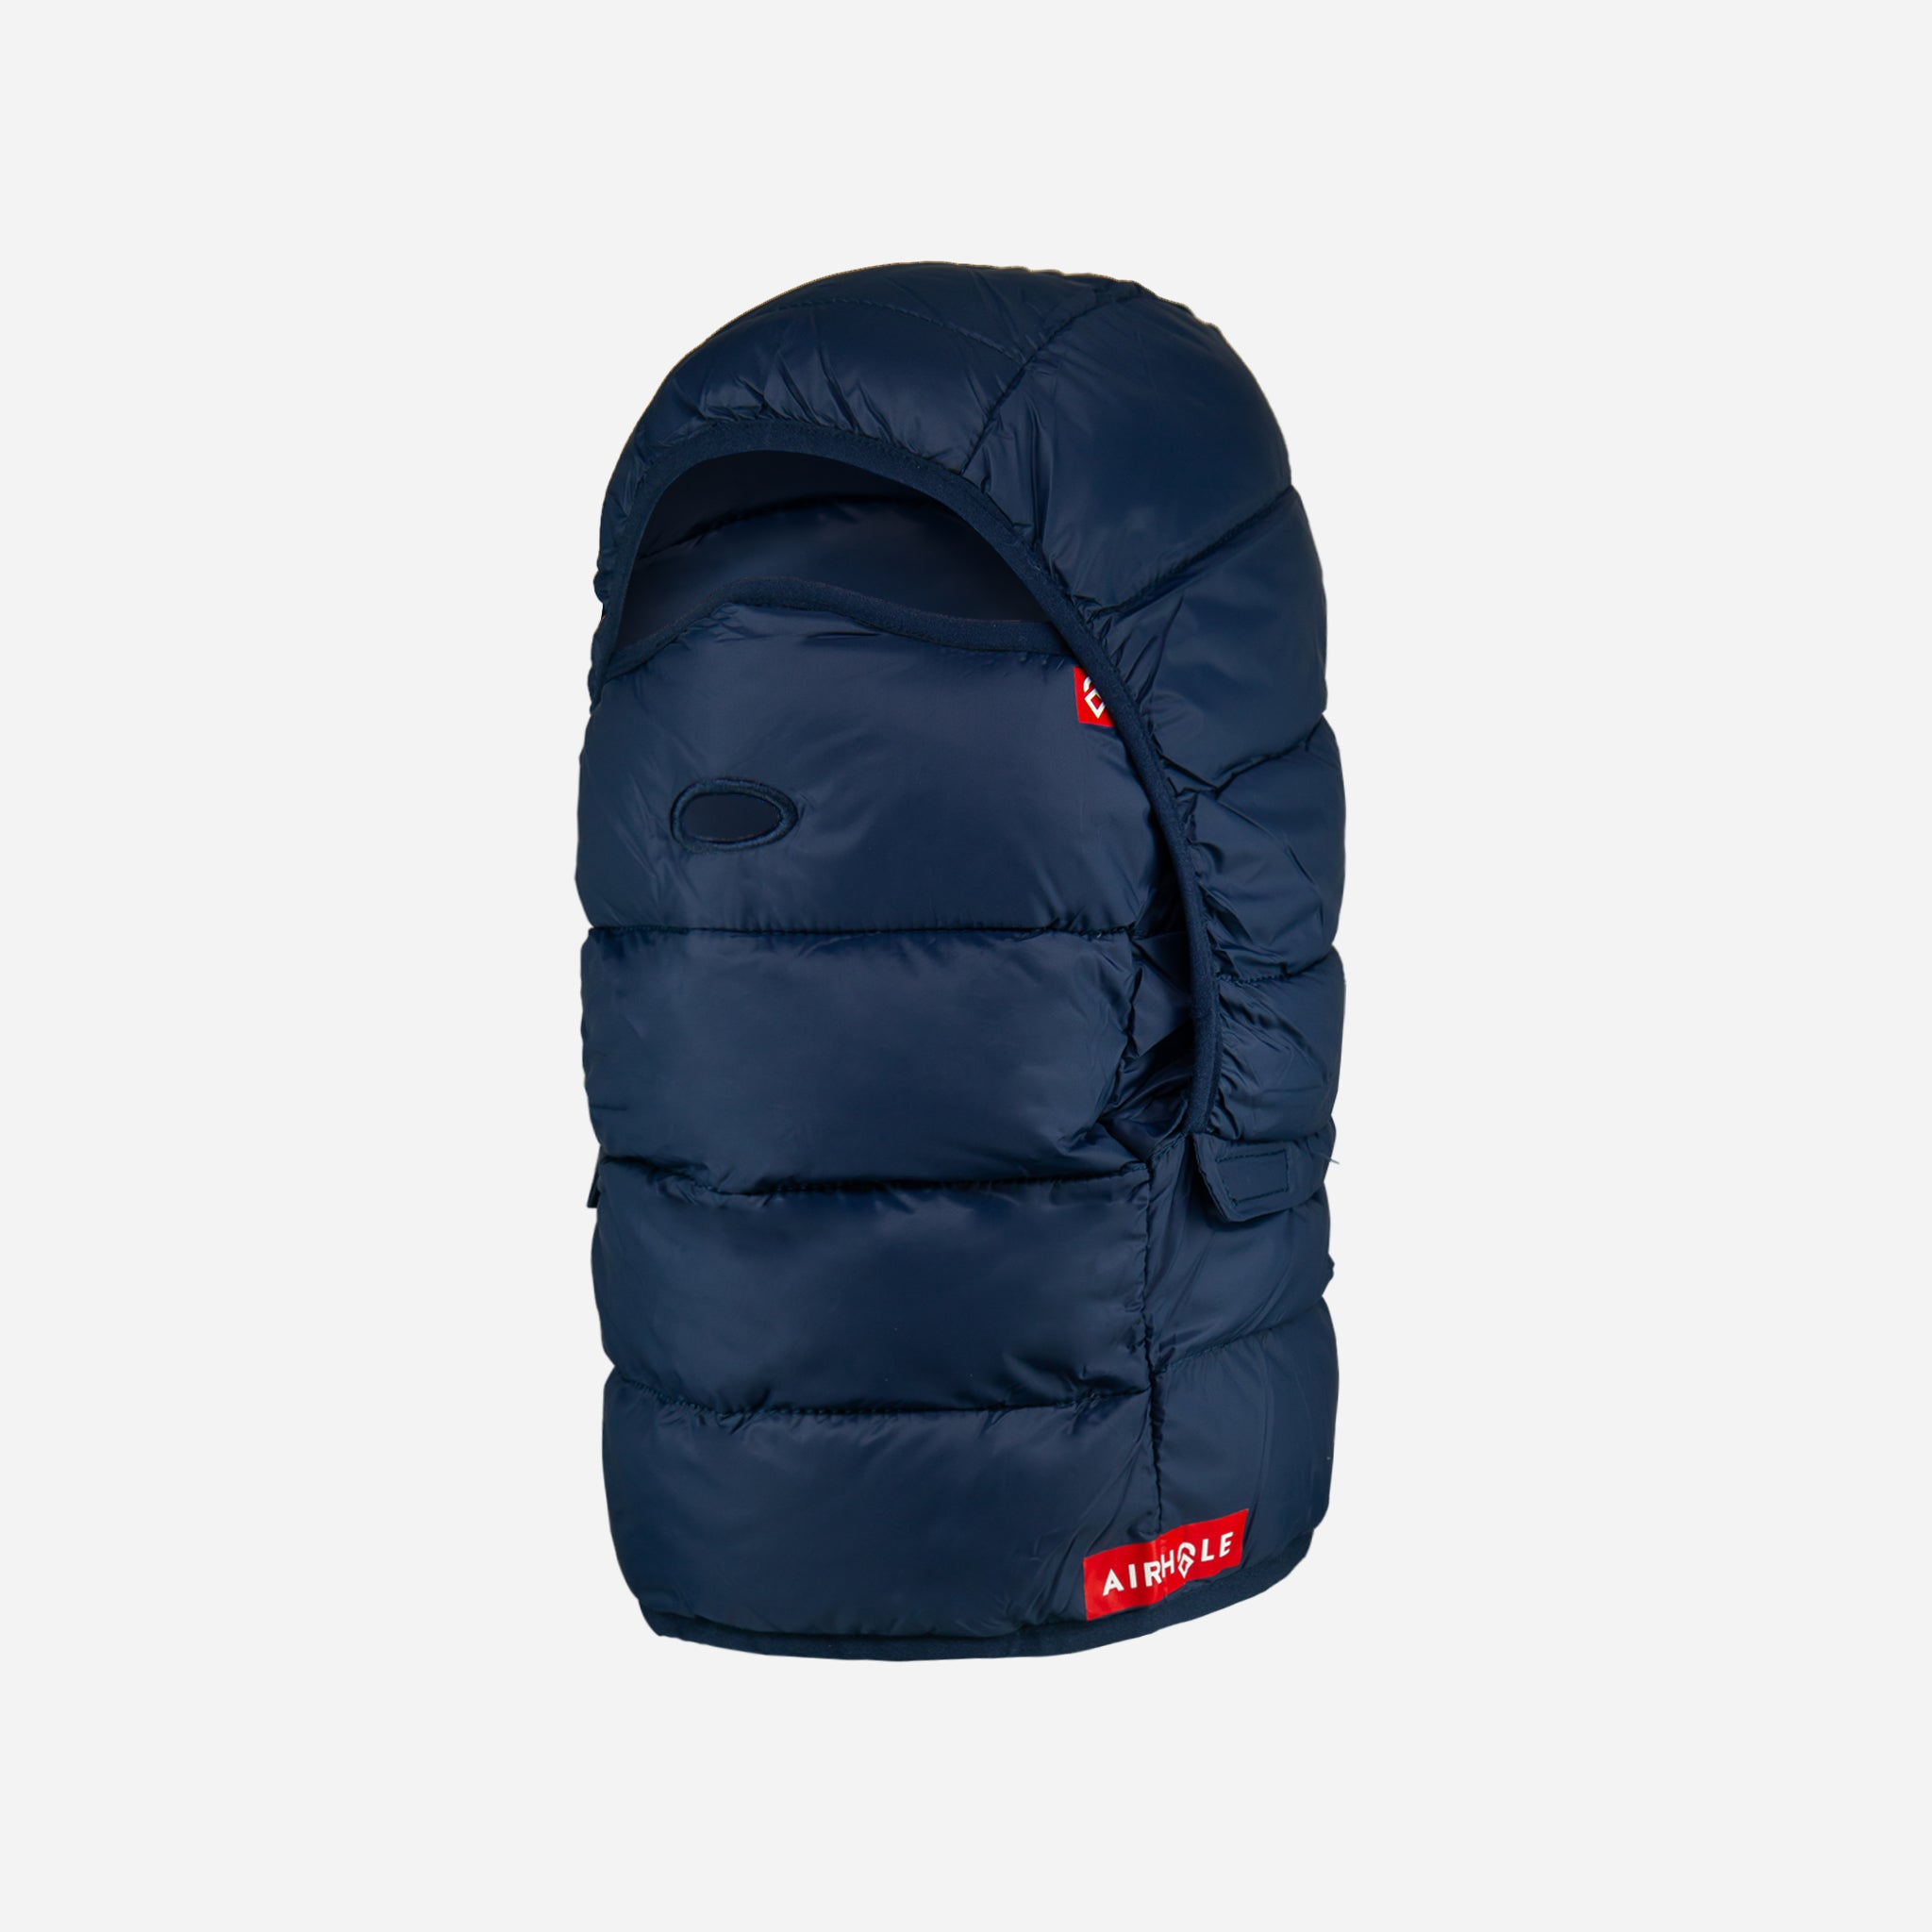 Airhood Packable Insulated Navy